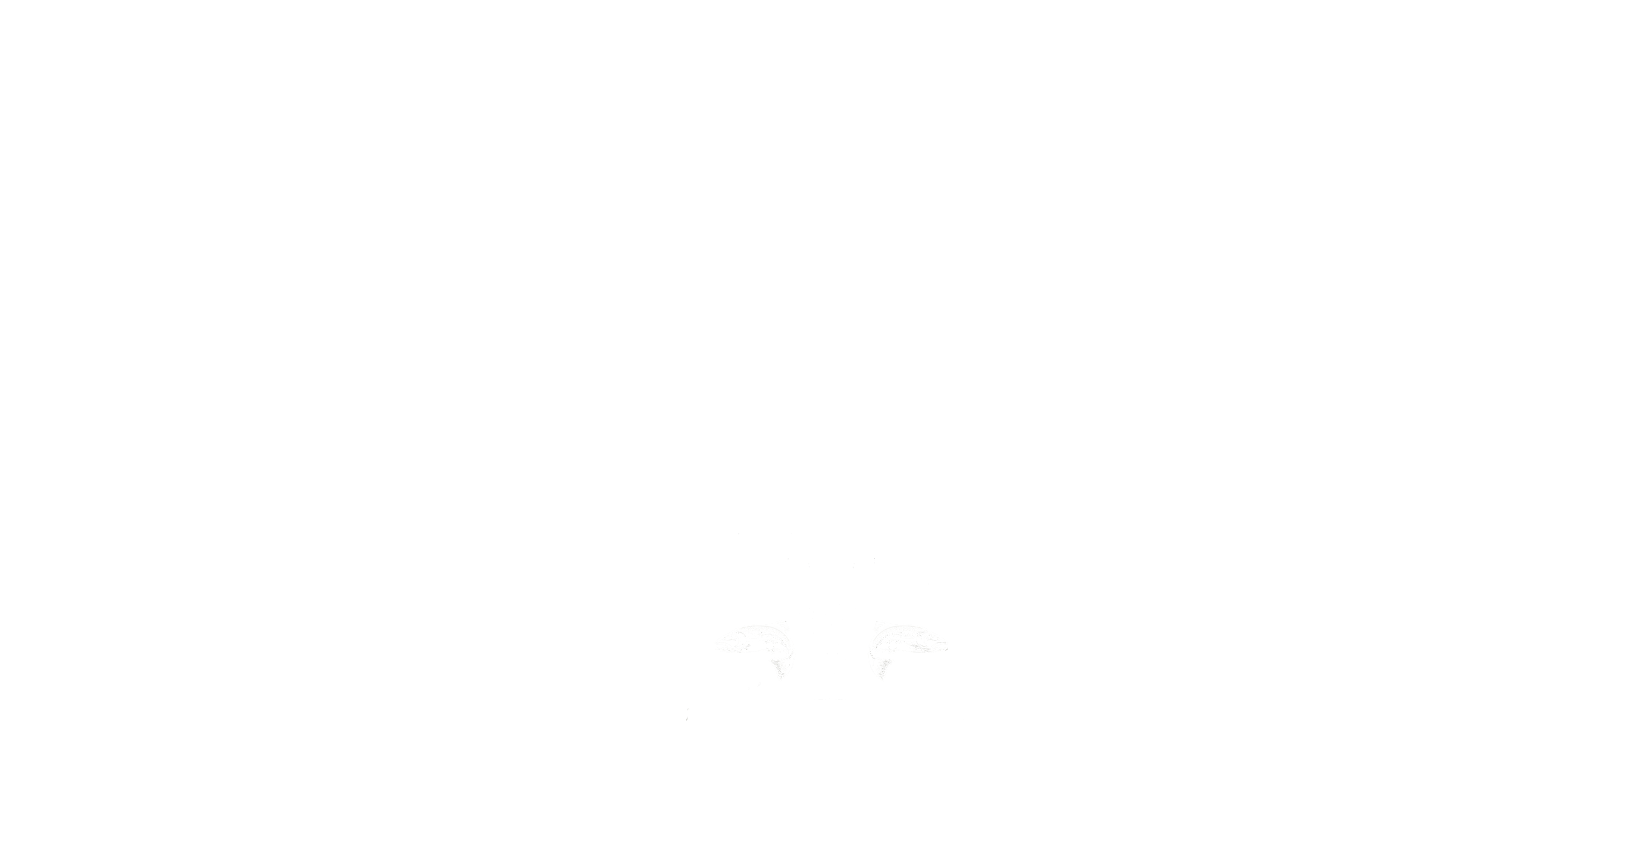 North Carolina Republican Sportsmen